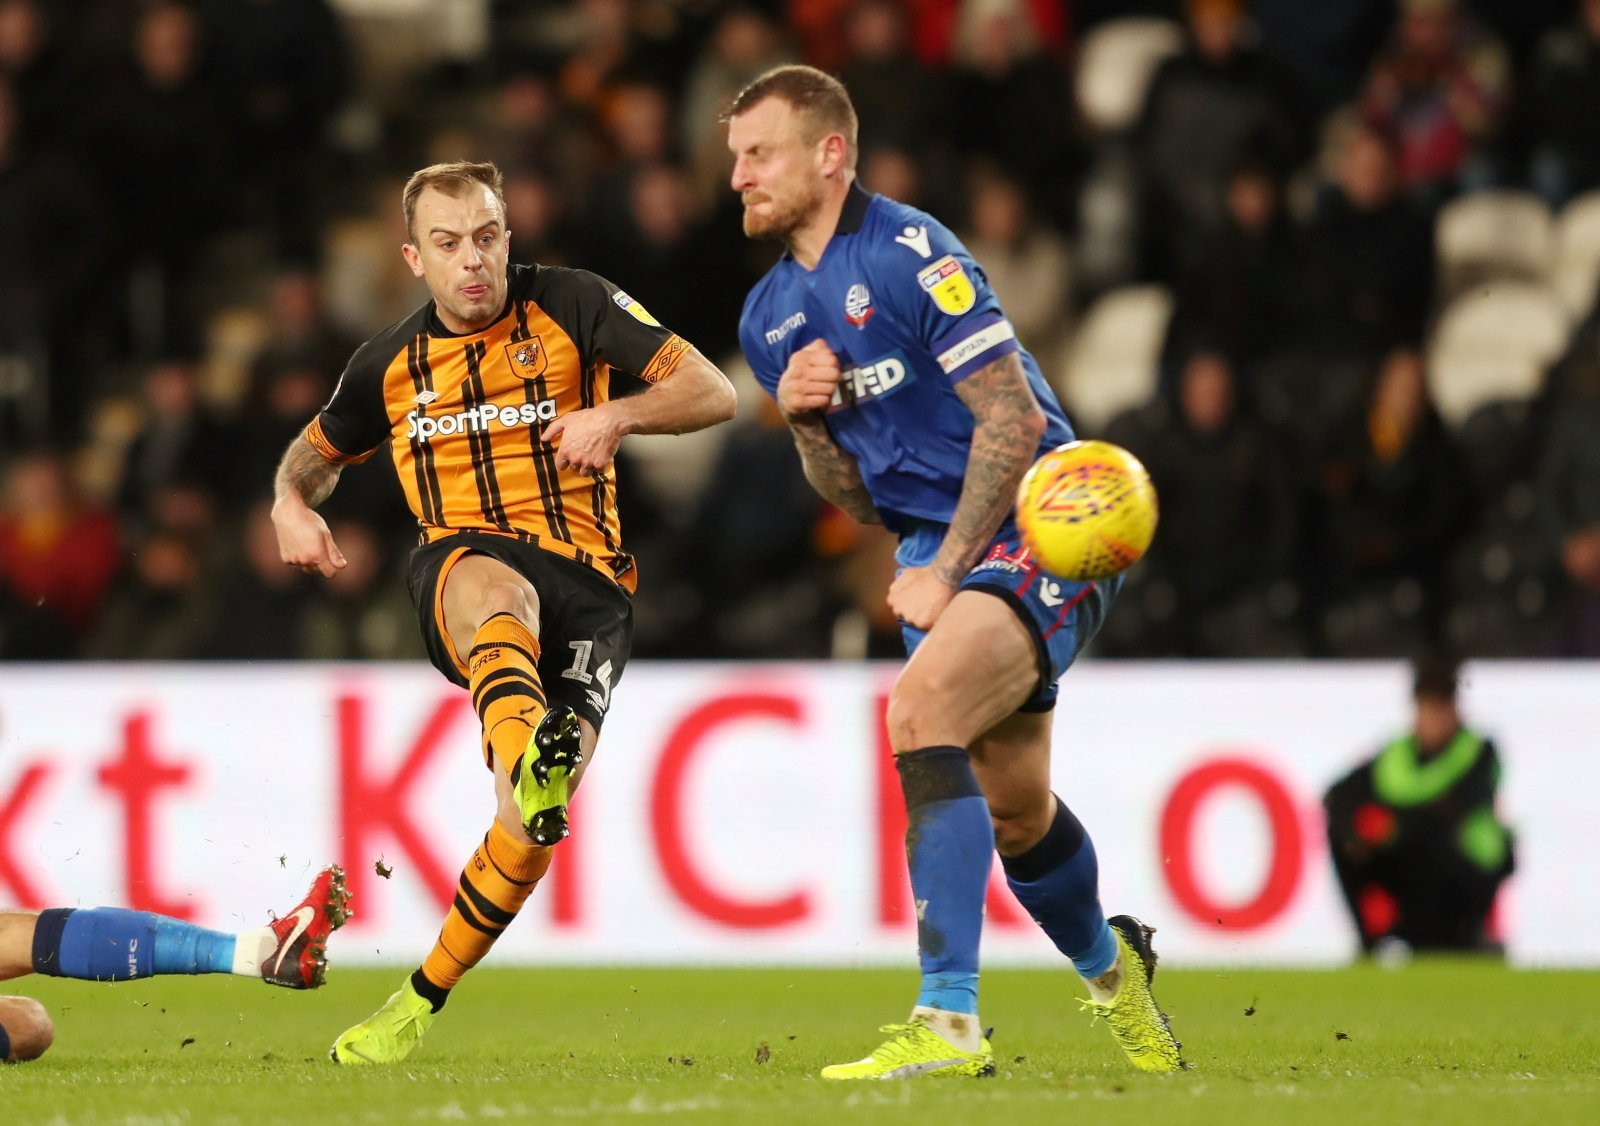 Leeds should try and sign Kamil Grosicki in summer